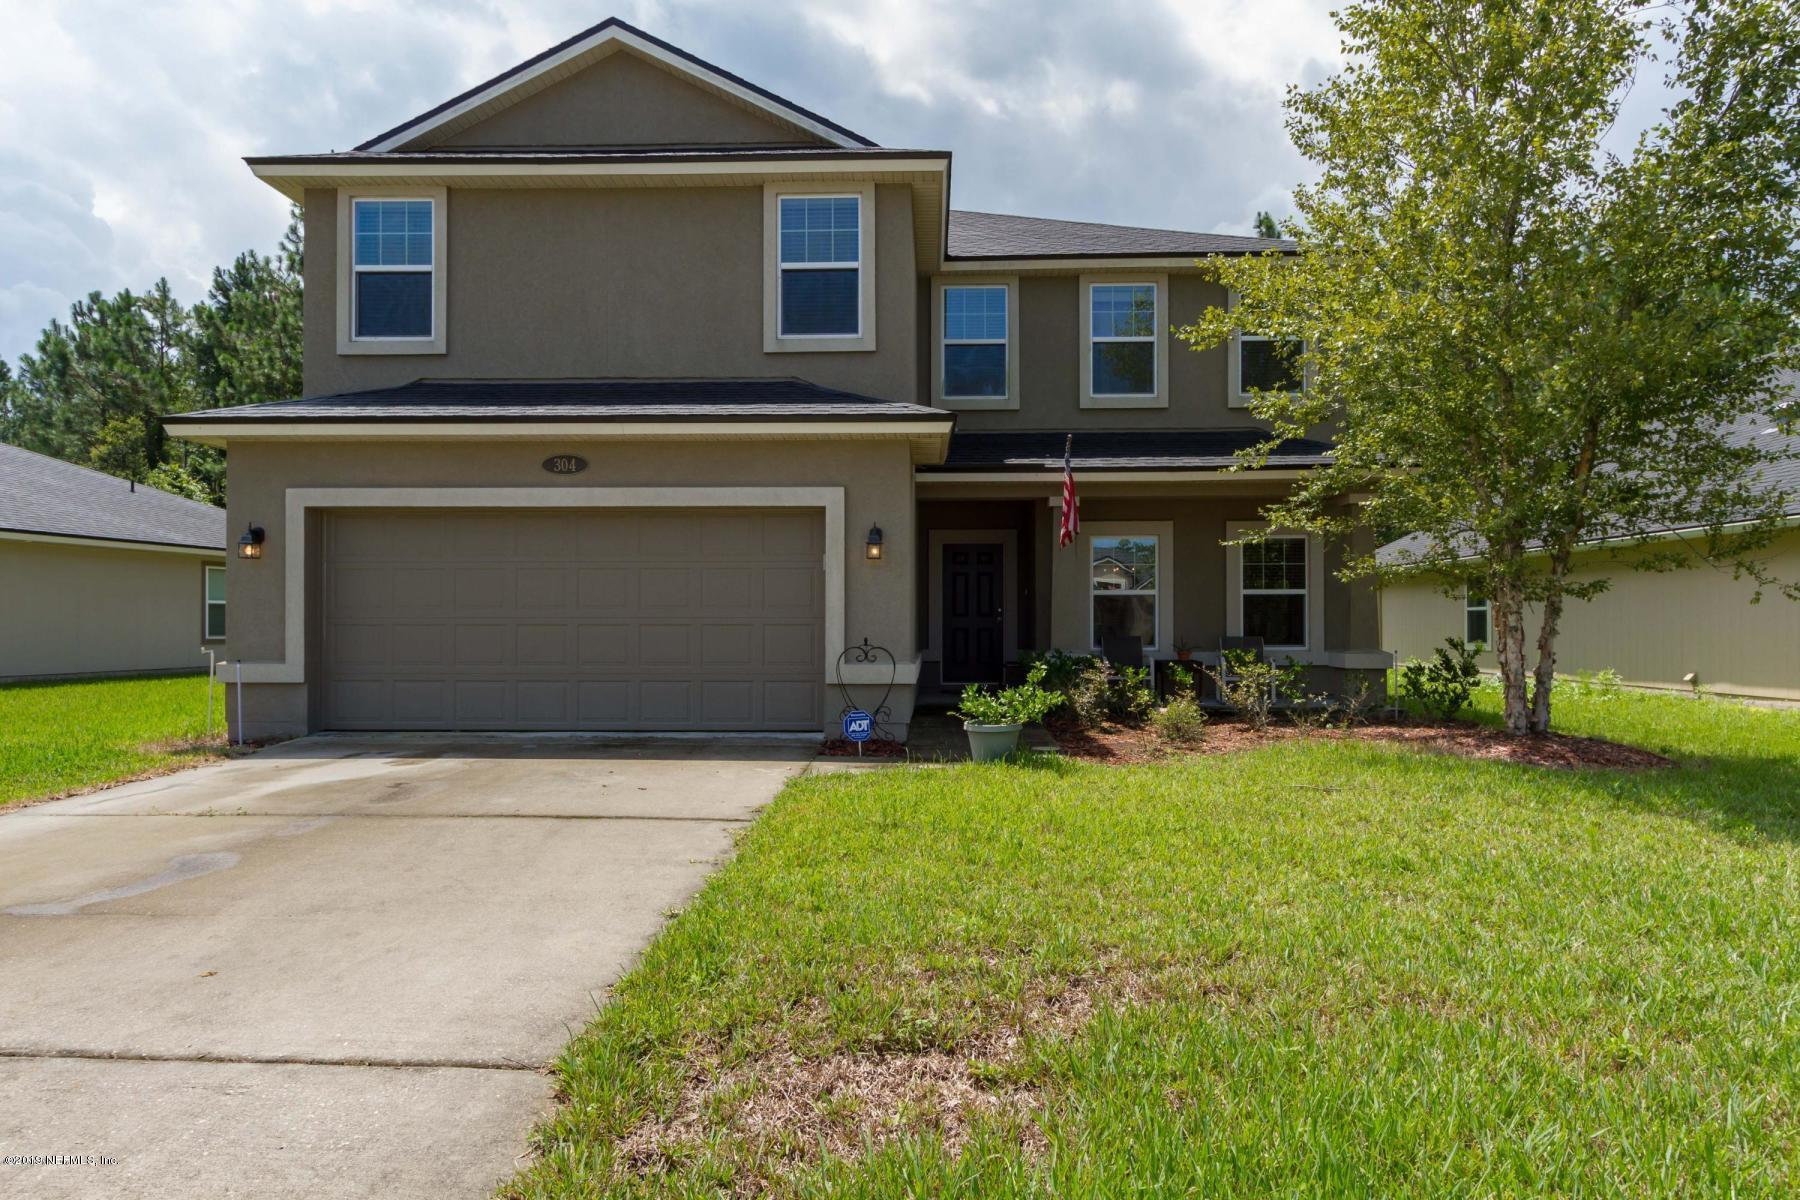 304 W ADELAIDE DR, Julington Creek in ST. JOHNS County, FL 32259 Home for Sale